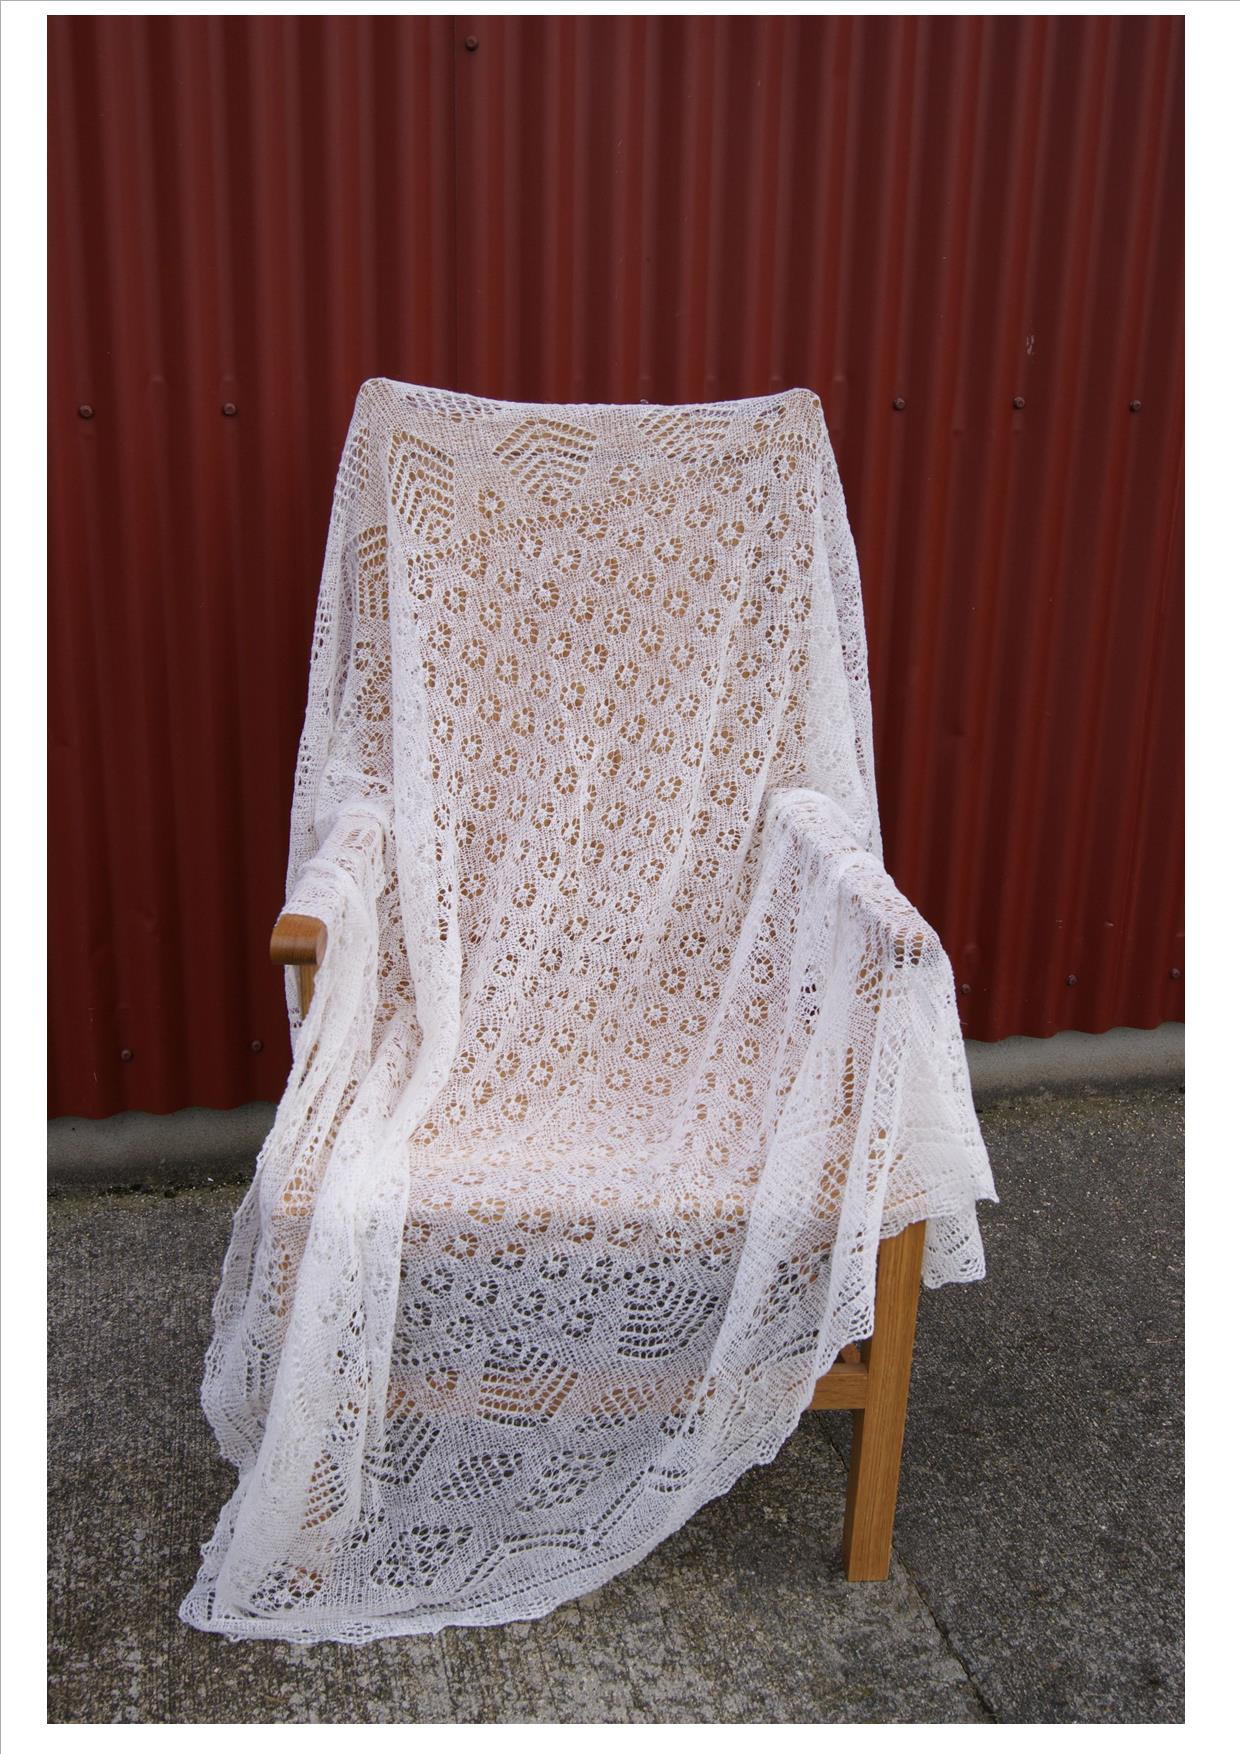 1-PLY CHRISTENING SHAWL 1.jpg